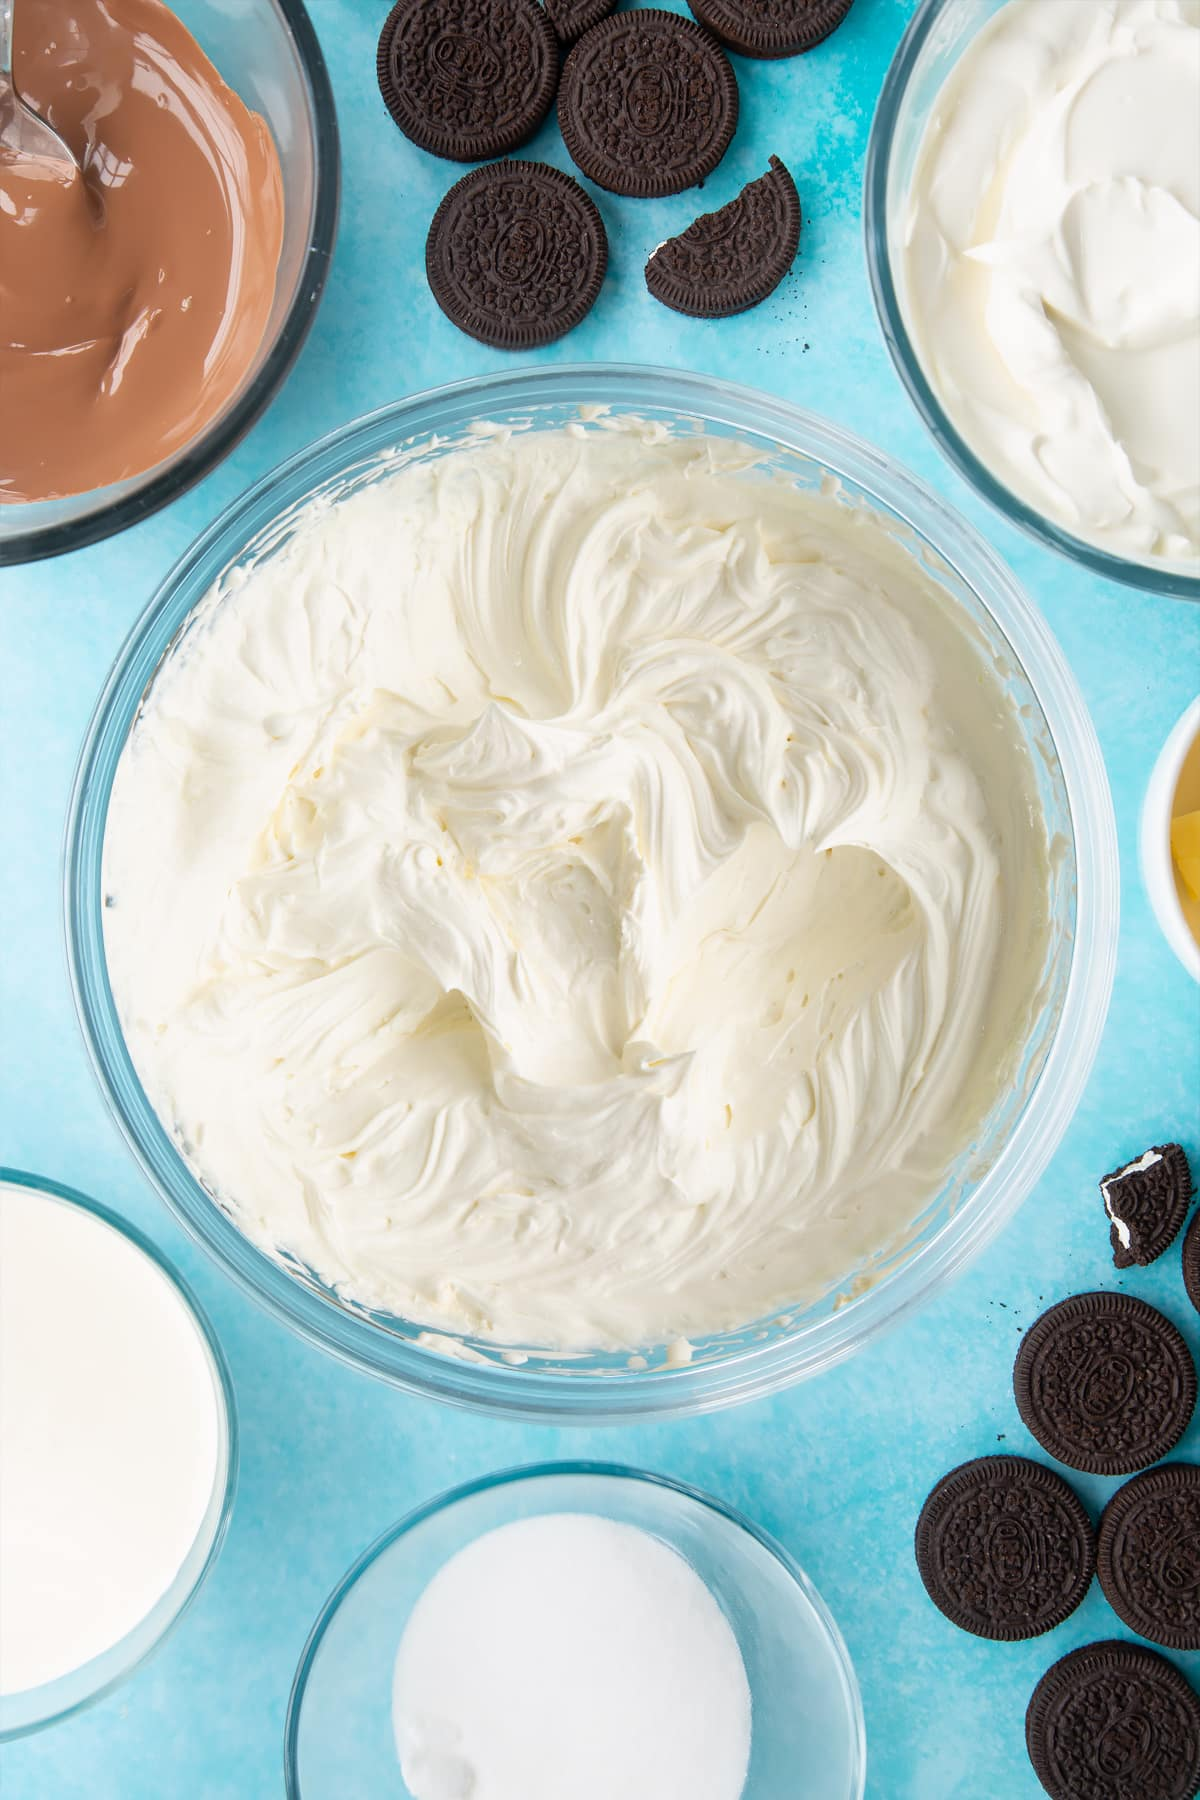 Overhead shot of whipped cream, cream, sugar and cream cheese mixed together in a large clear bowl